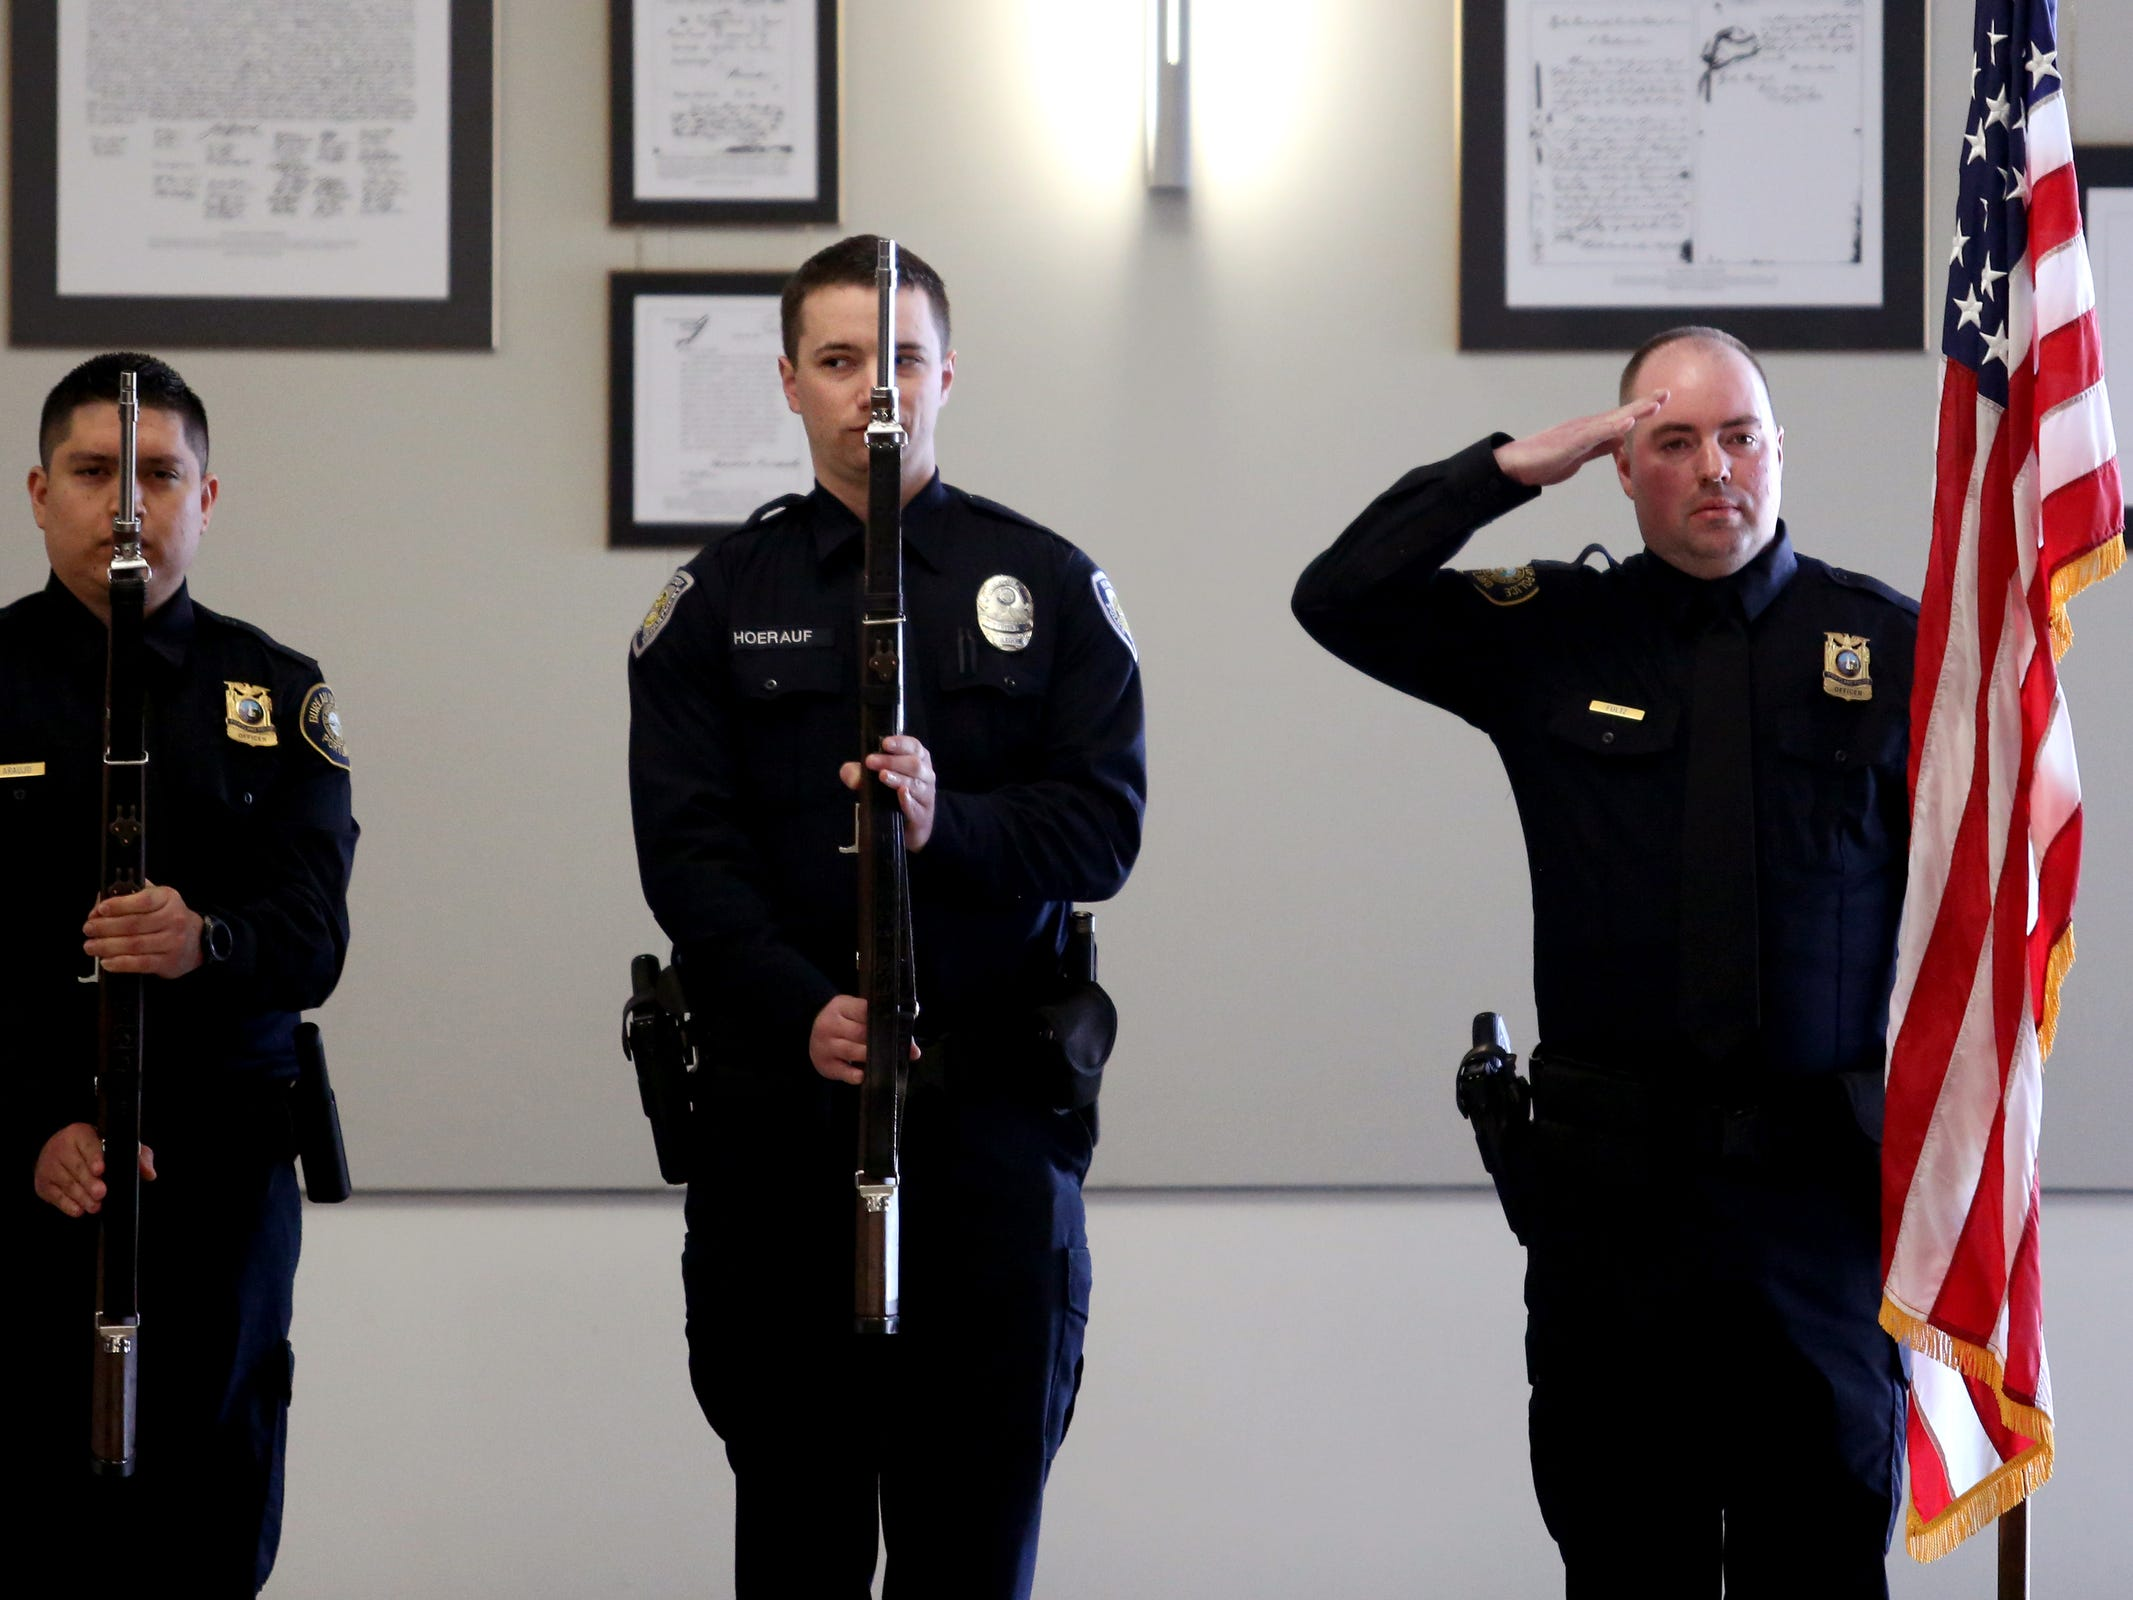 Graduates display the colors during the national anthem before a Basic Police Class graduation ceremony at the Department of Public Safety Standards and Training in Salem on March 15, 2019.